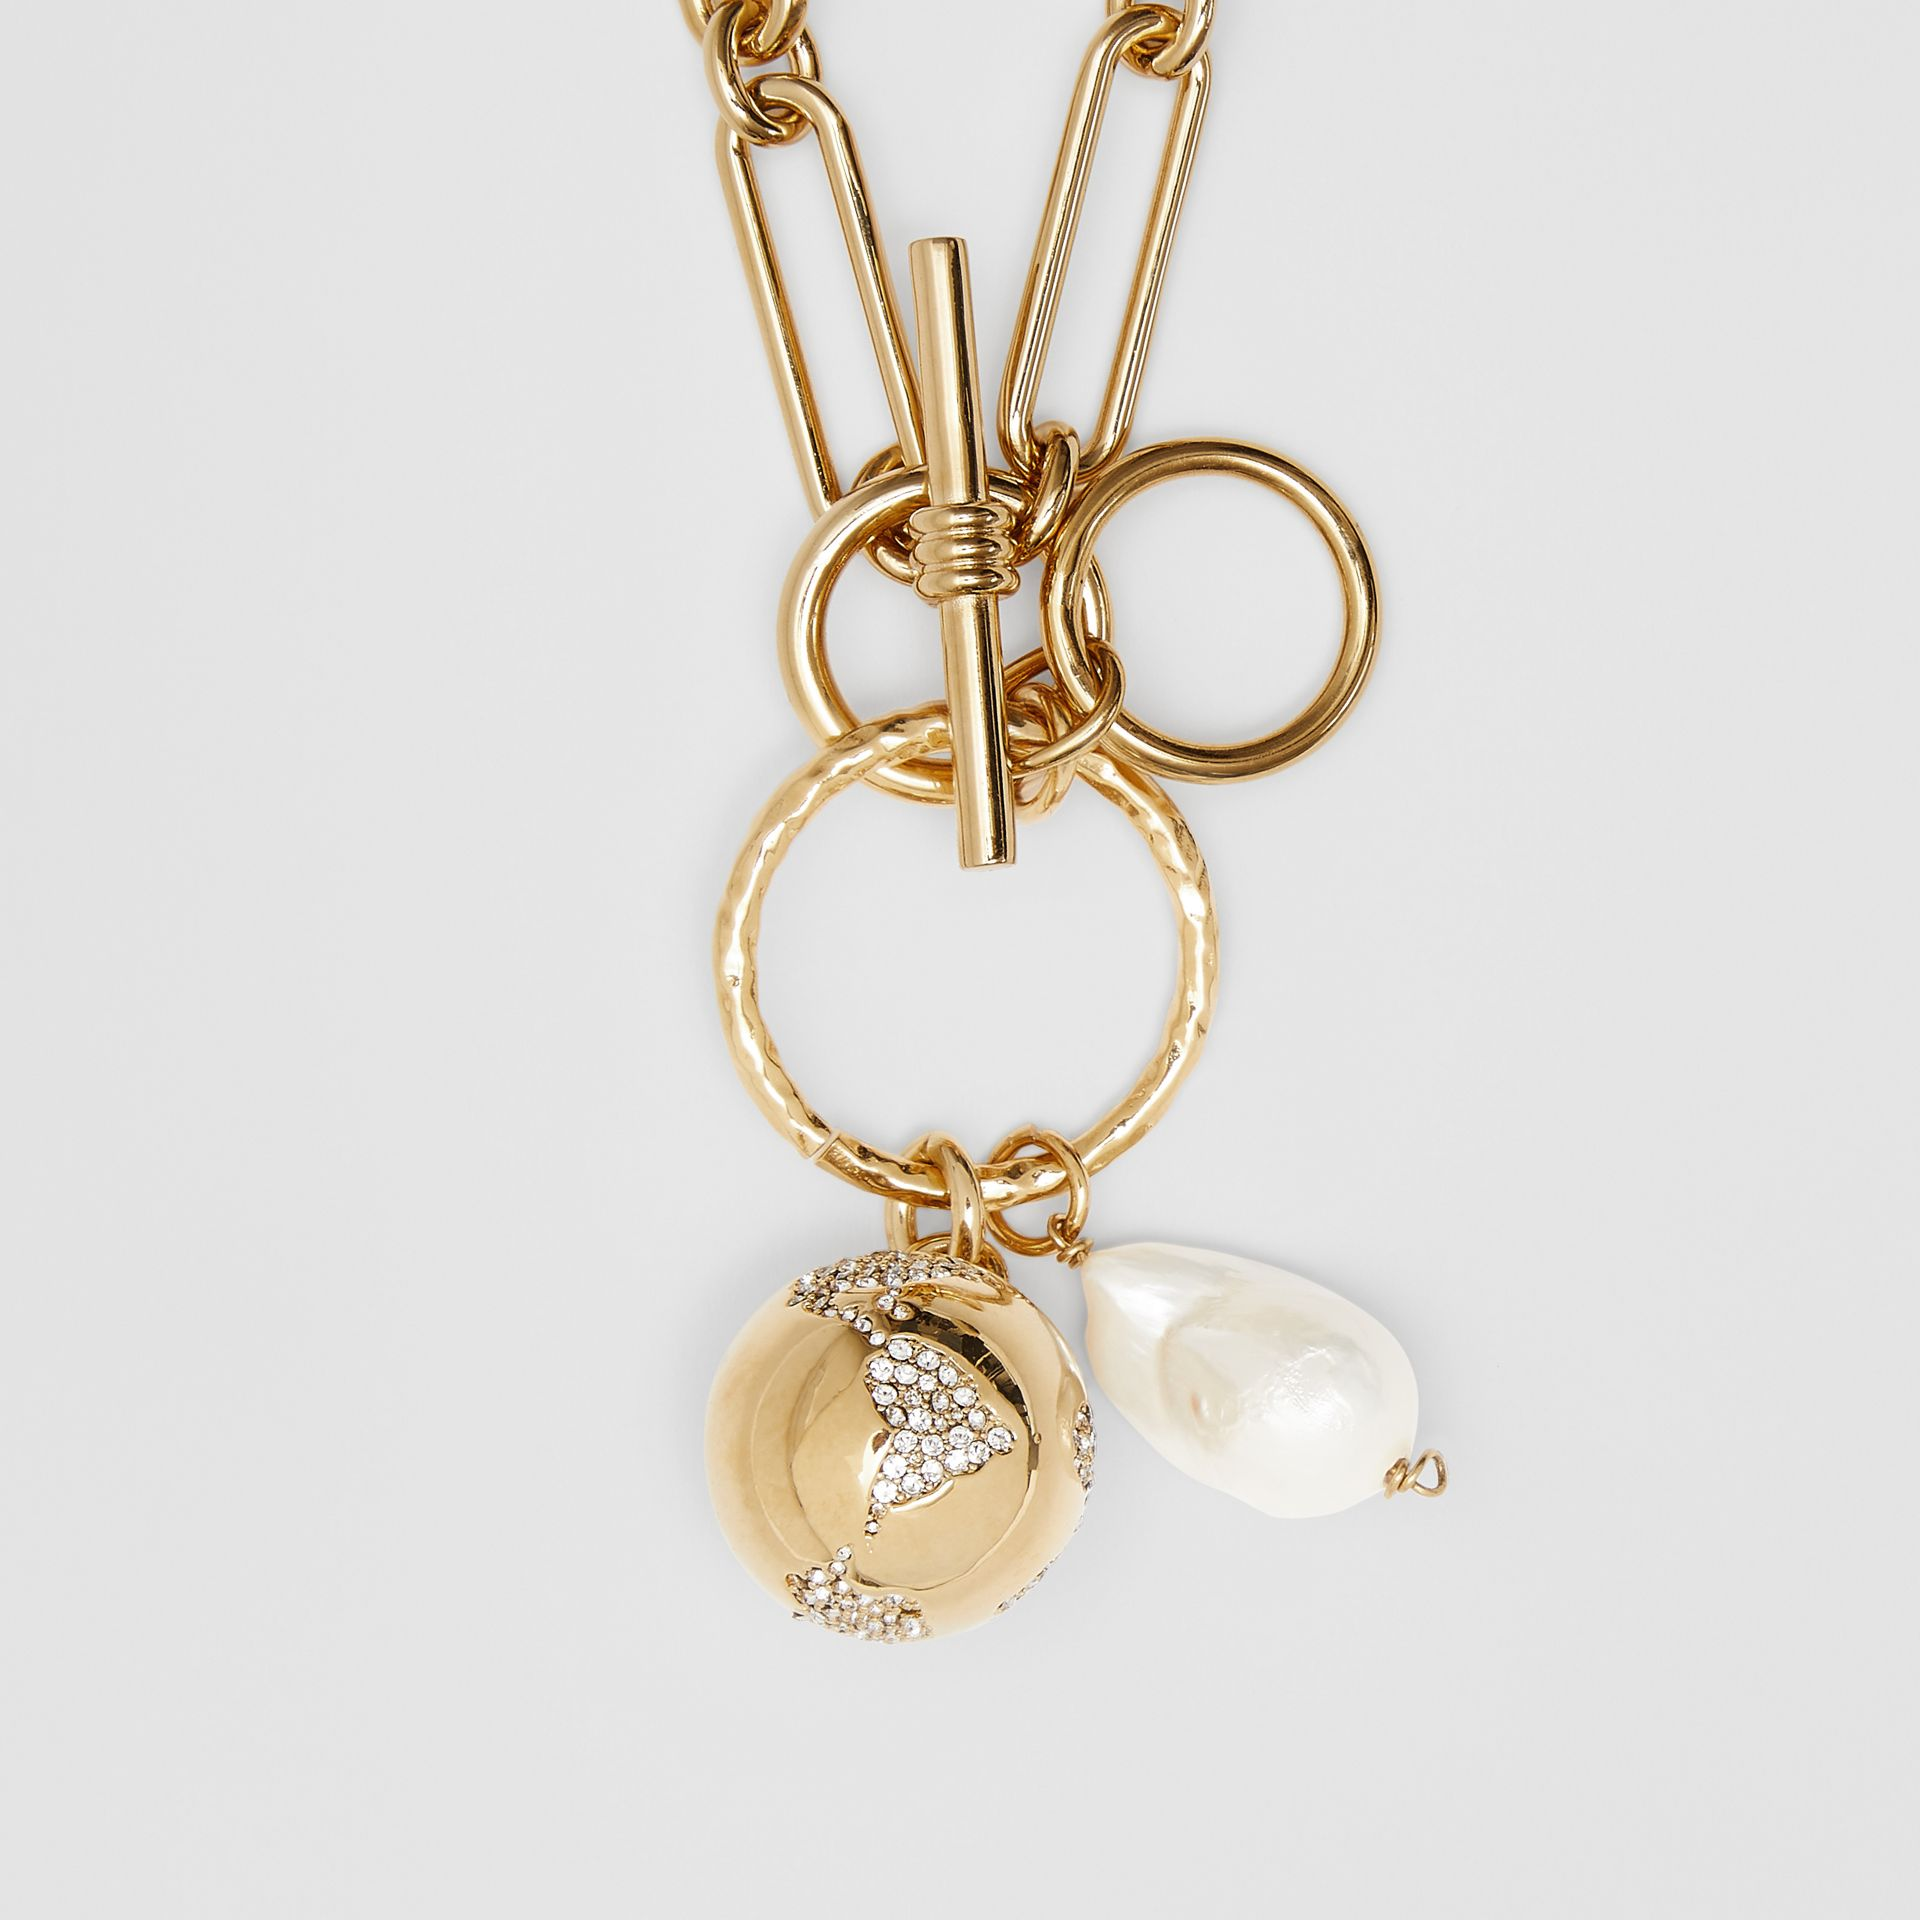 Faux Pearl Charm Gold-plated Chain Necklace in Light - Women | Burberry Hong Kong S.A.R - gallery image 1